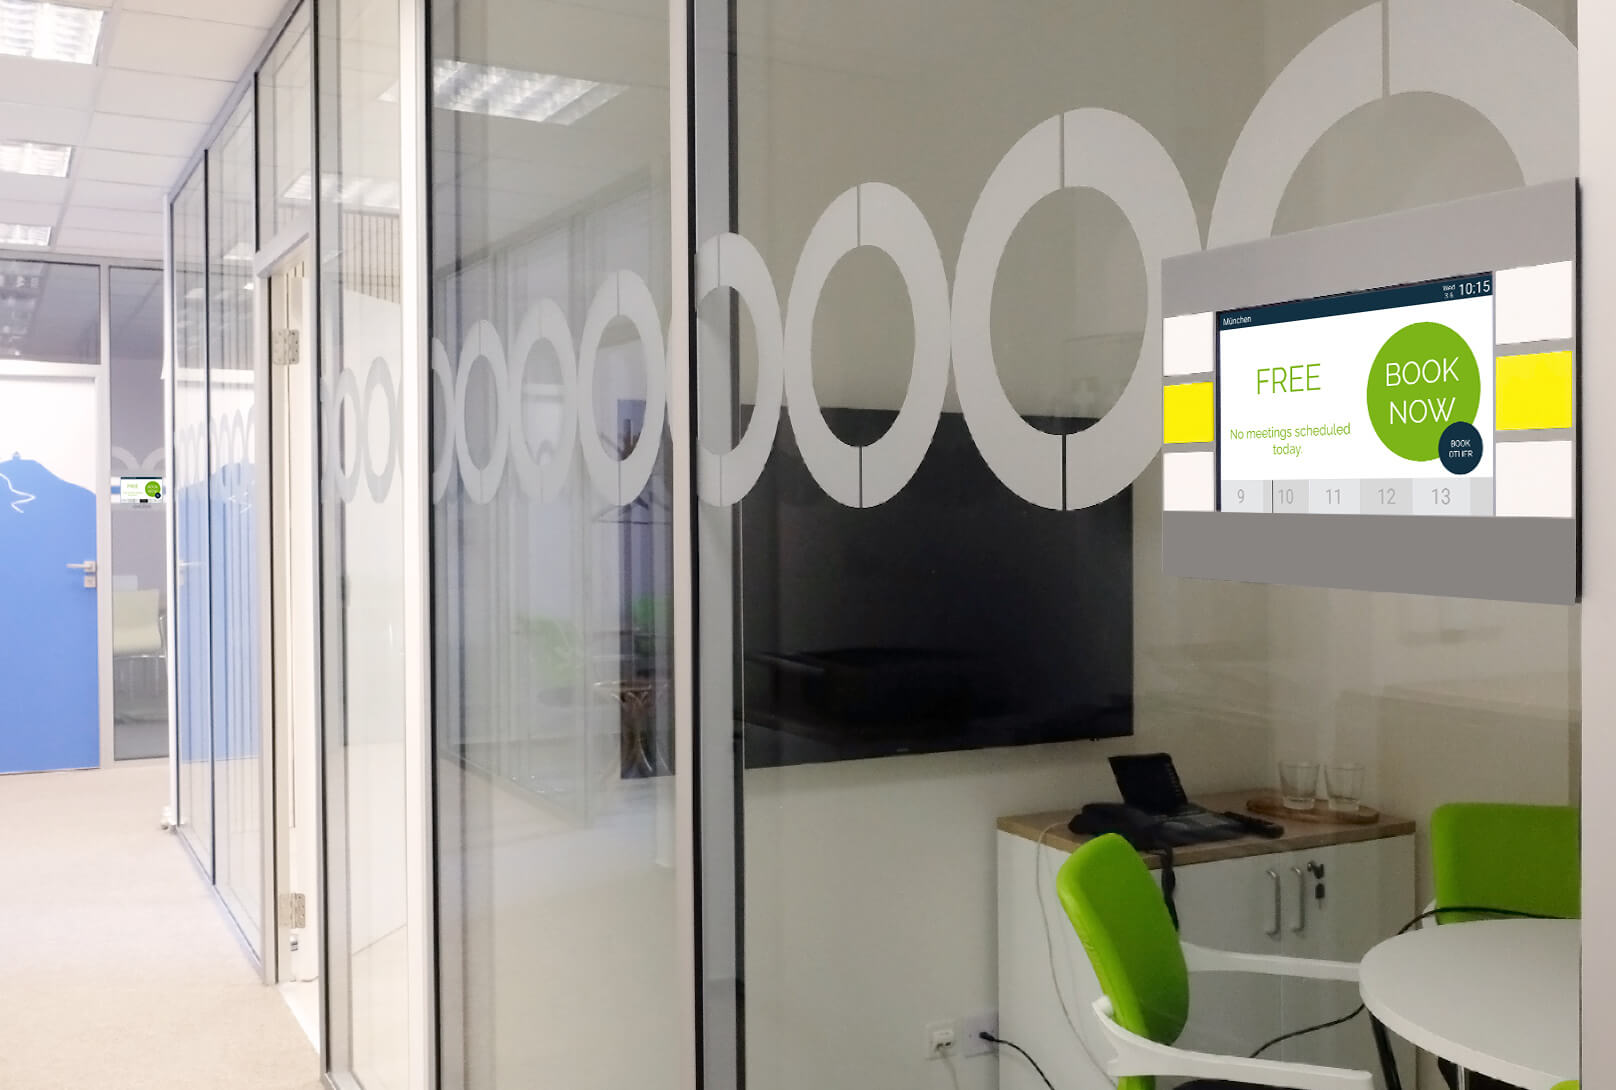 XEVOQ - Meeting room booking system - meeting rooms